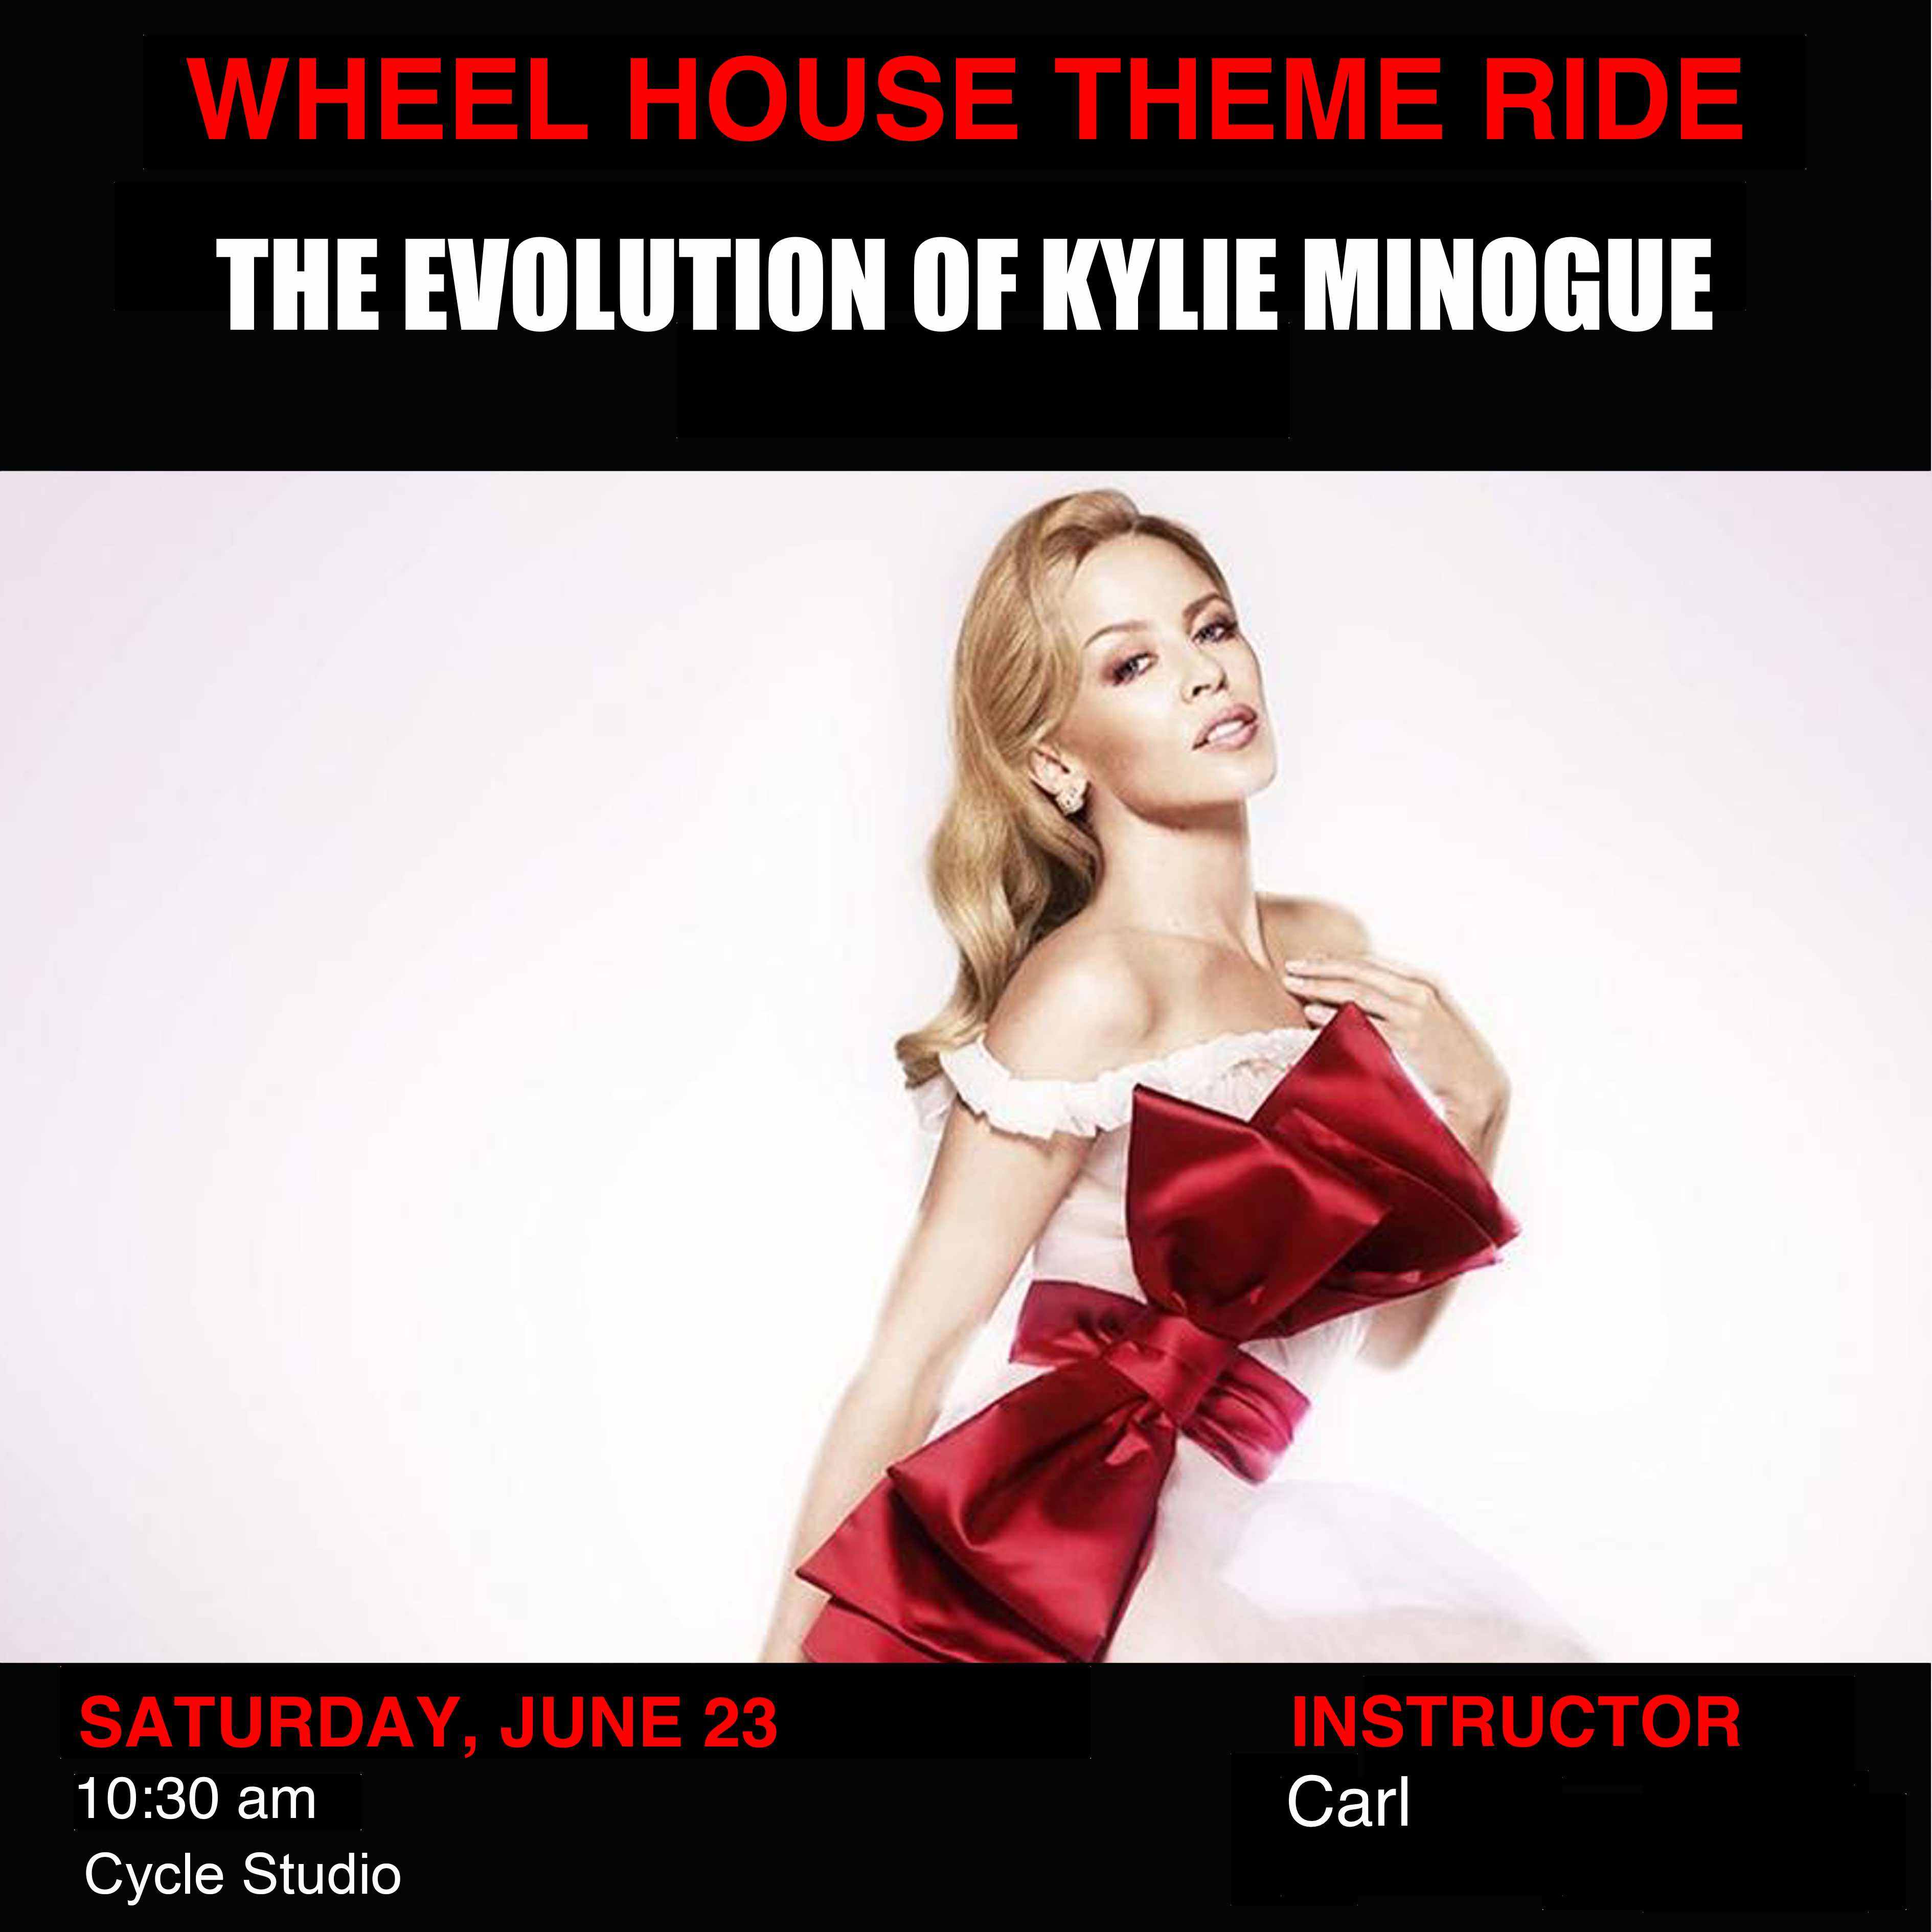 The Evolution Of Kylie Minogue